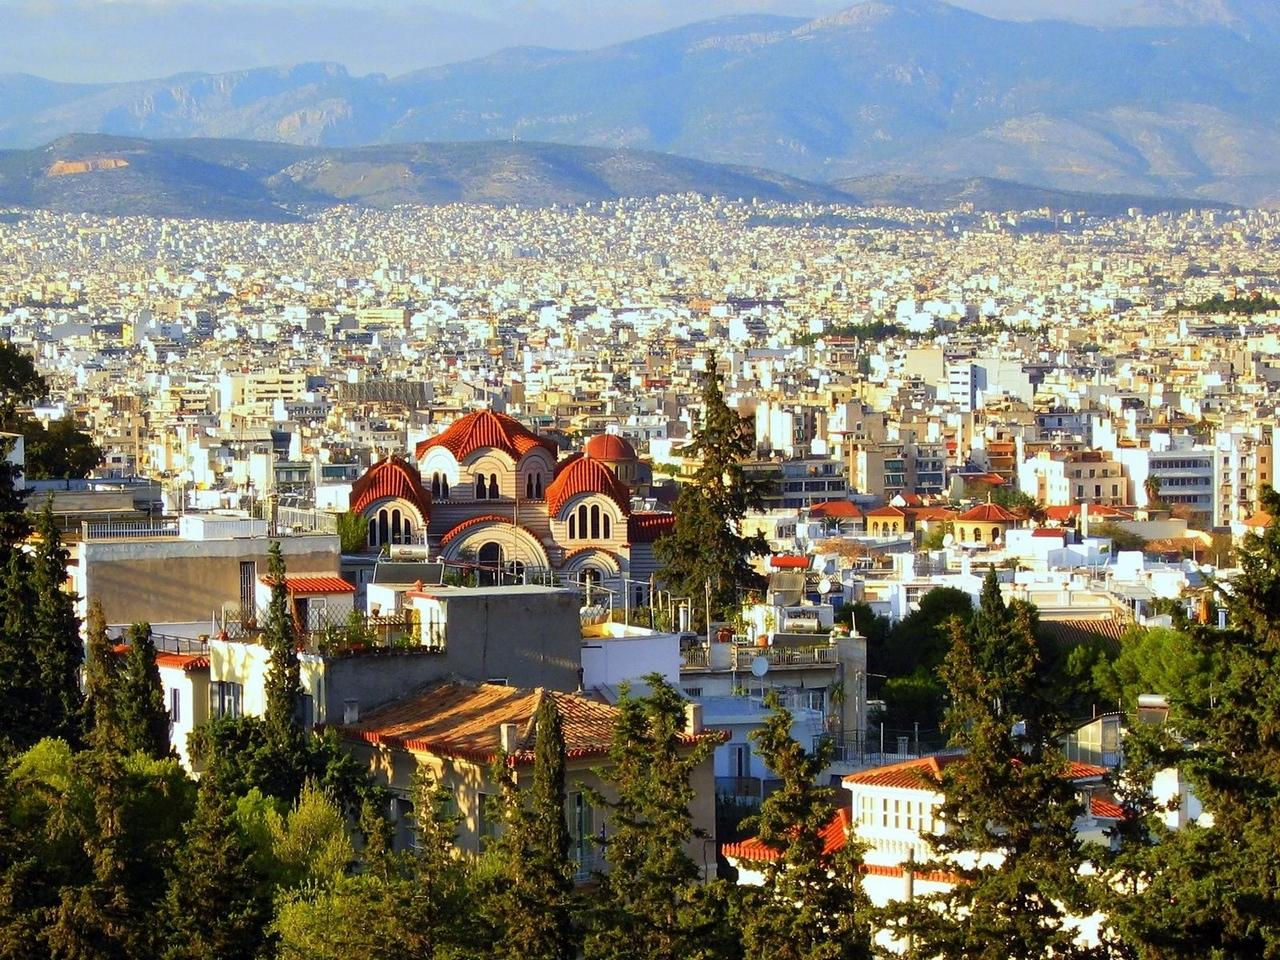 Download wallpaper 1280x960 athens, greece, city, building standard ...